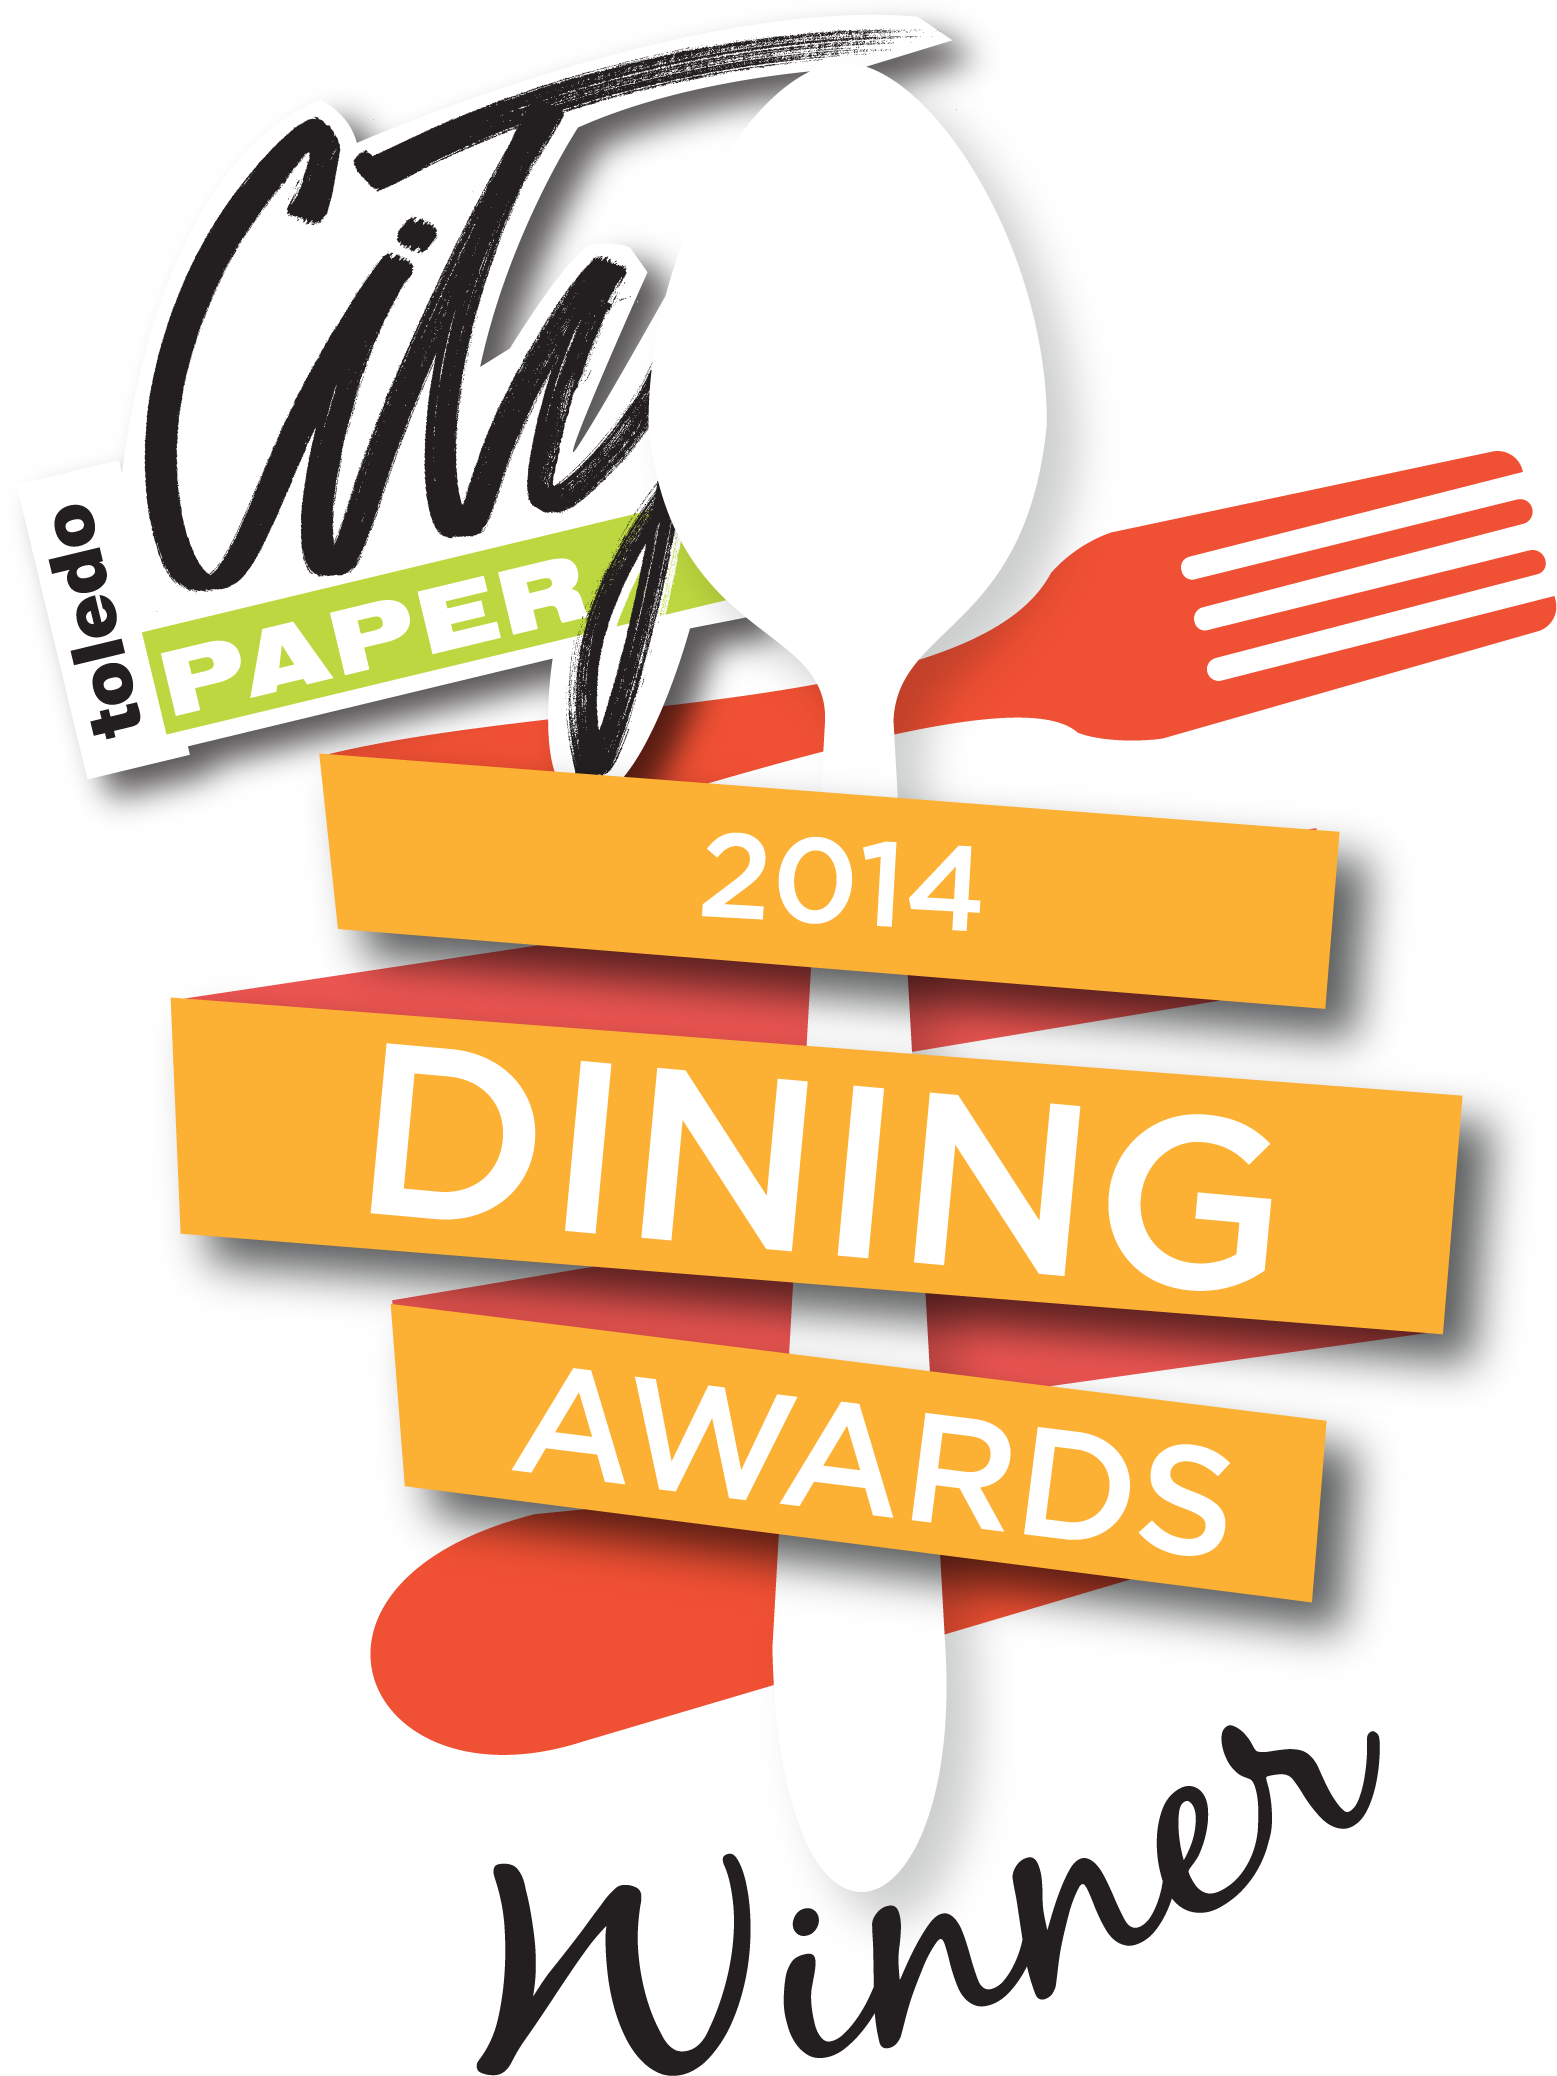 DiningGuide_Awards_4C_winner_final_2014